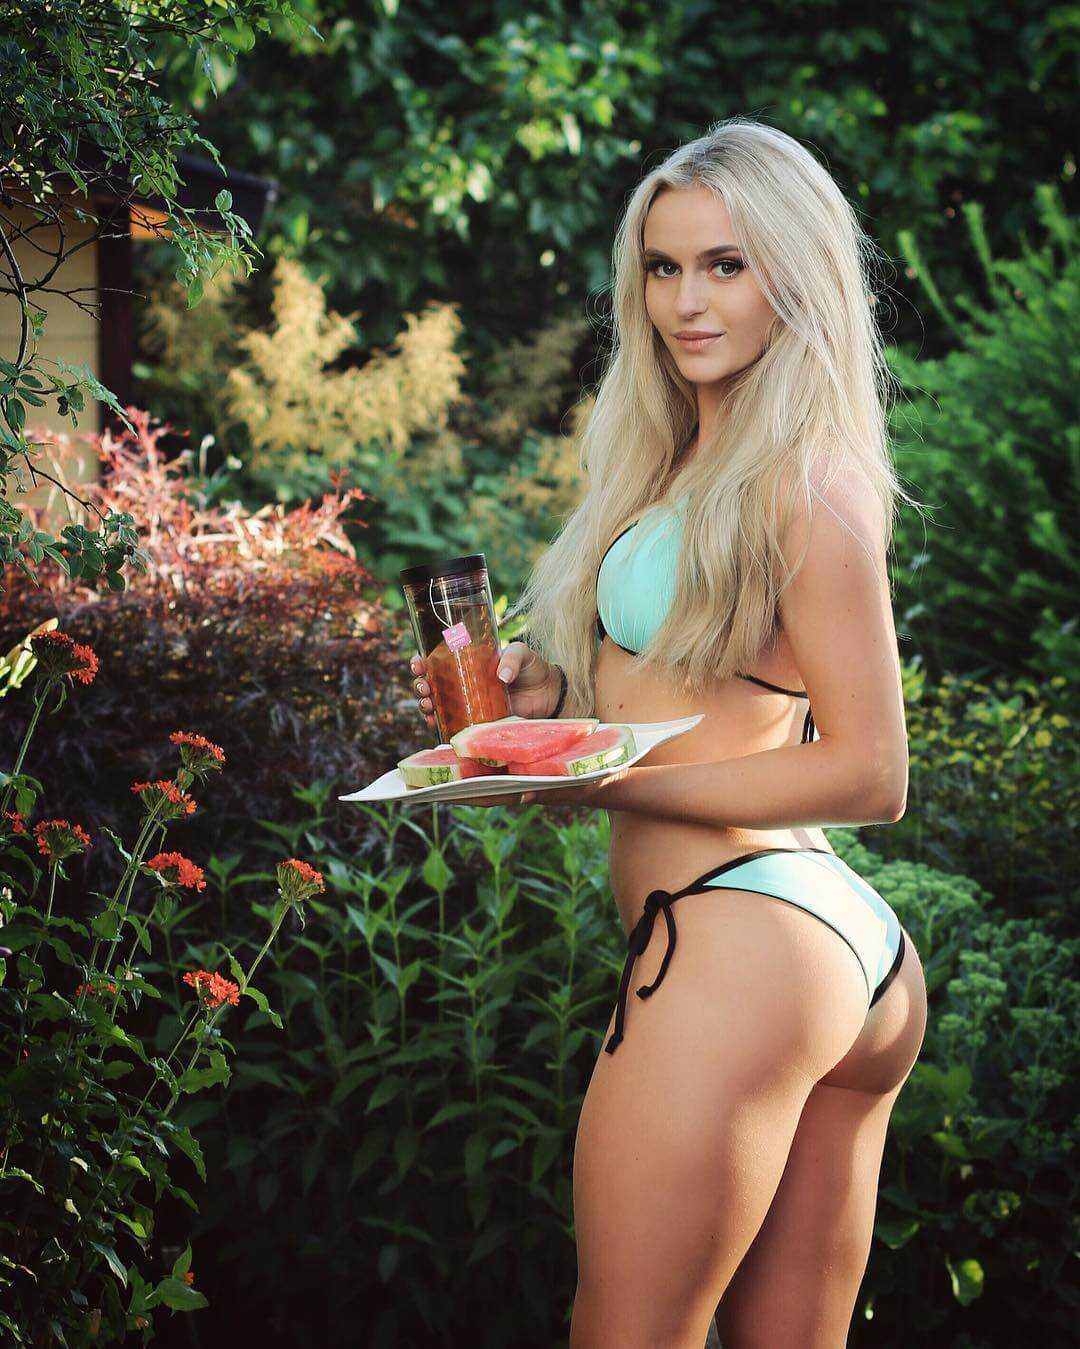 37 Nude Pictrures Of Anna Nystrom That Are Essentially